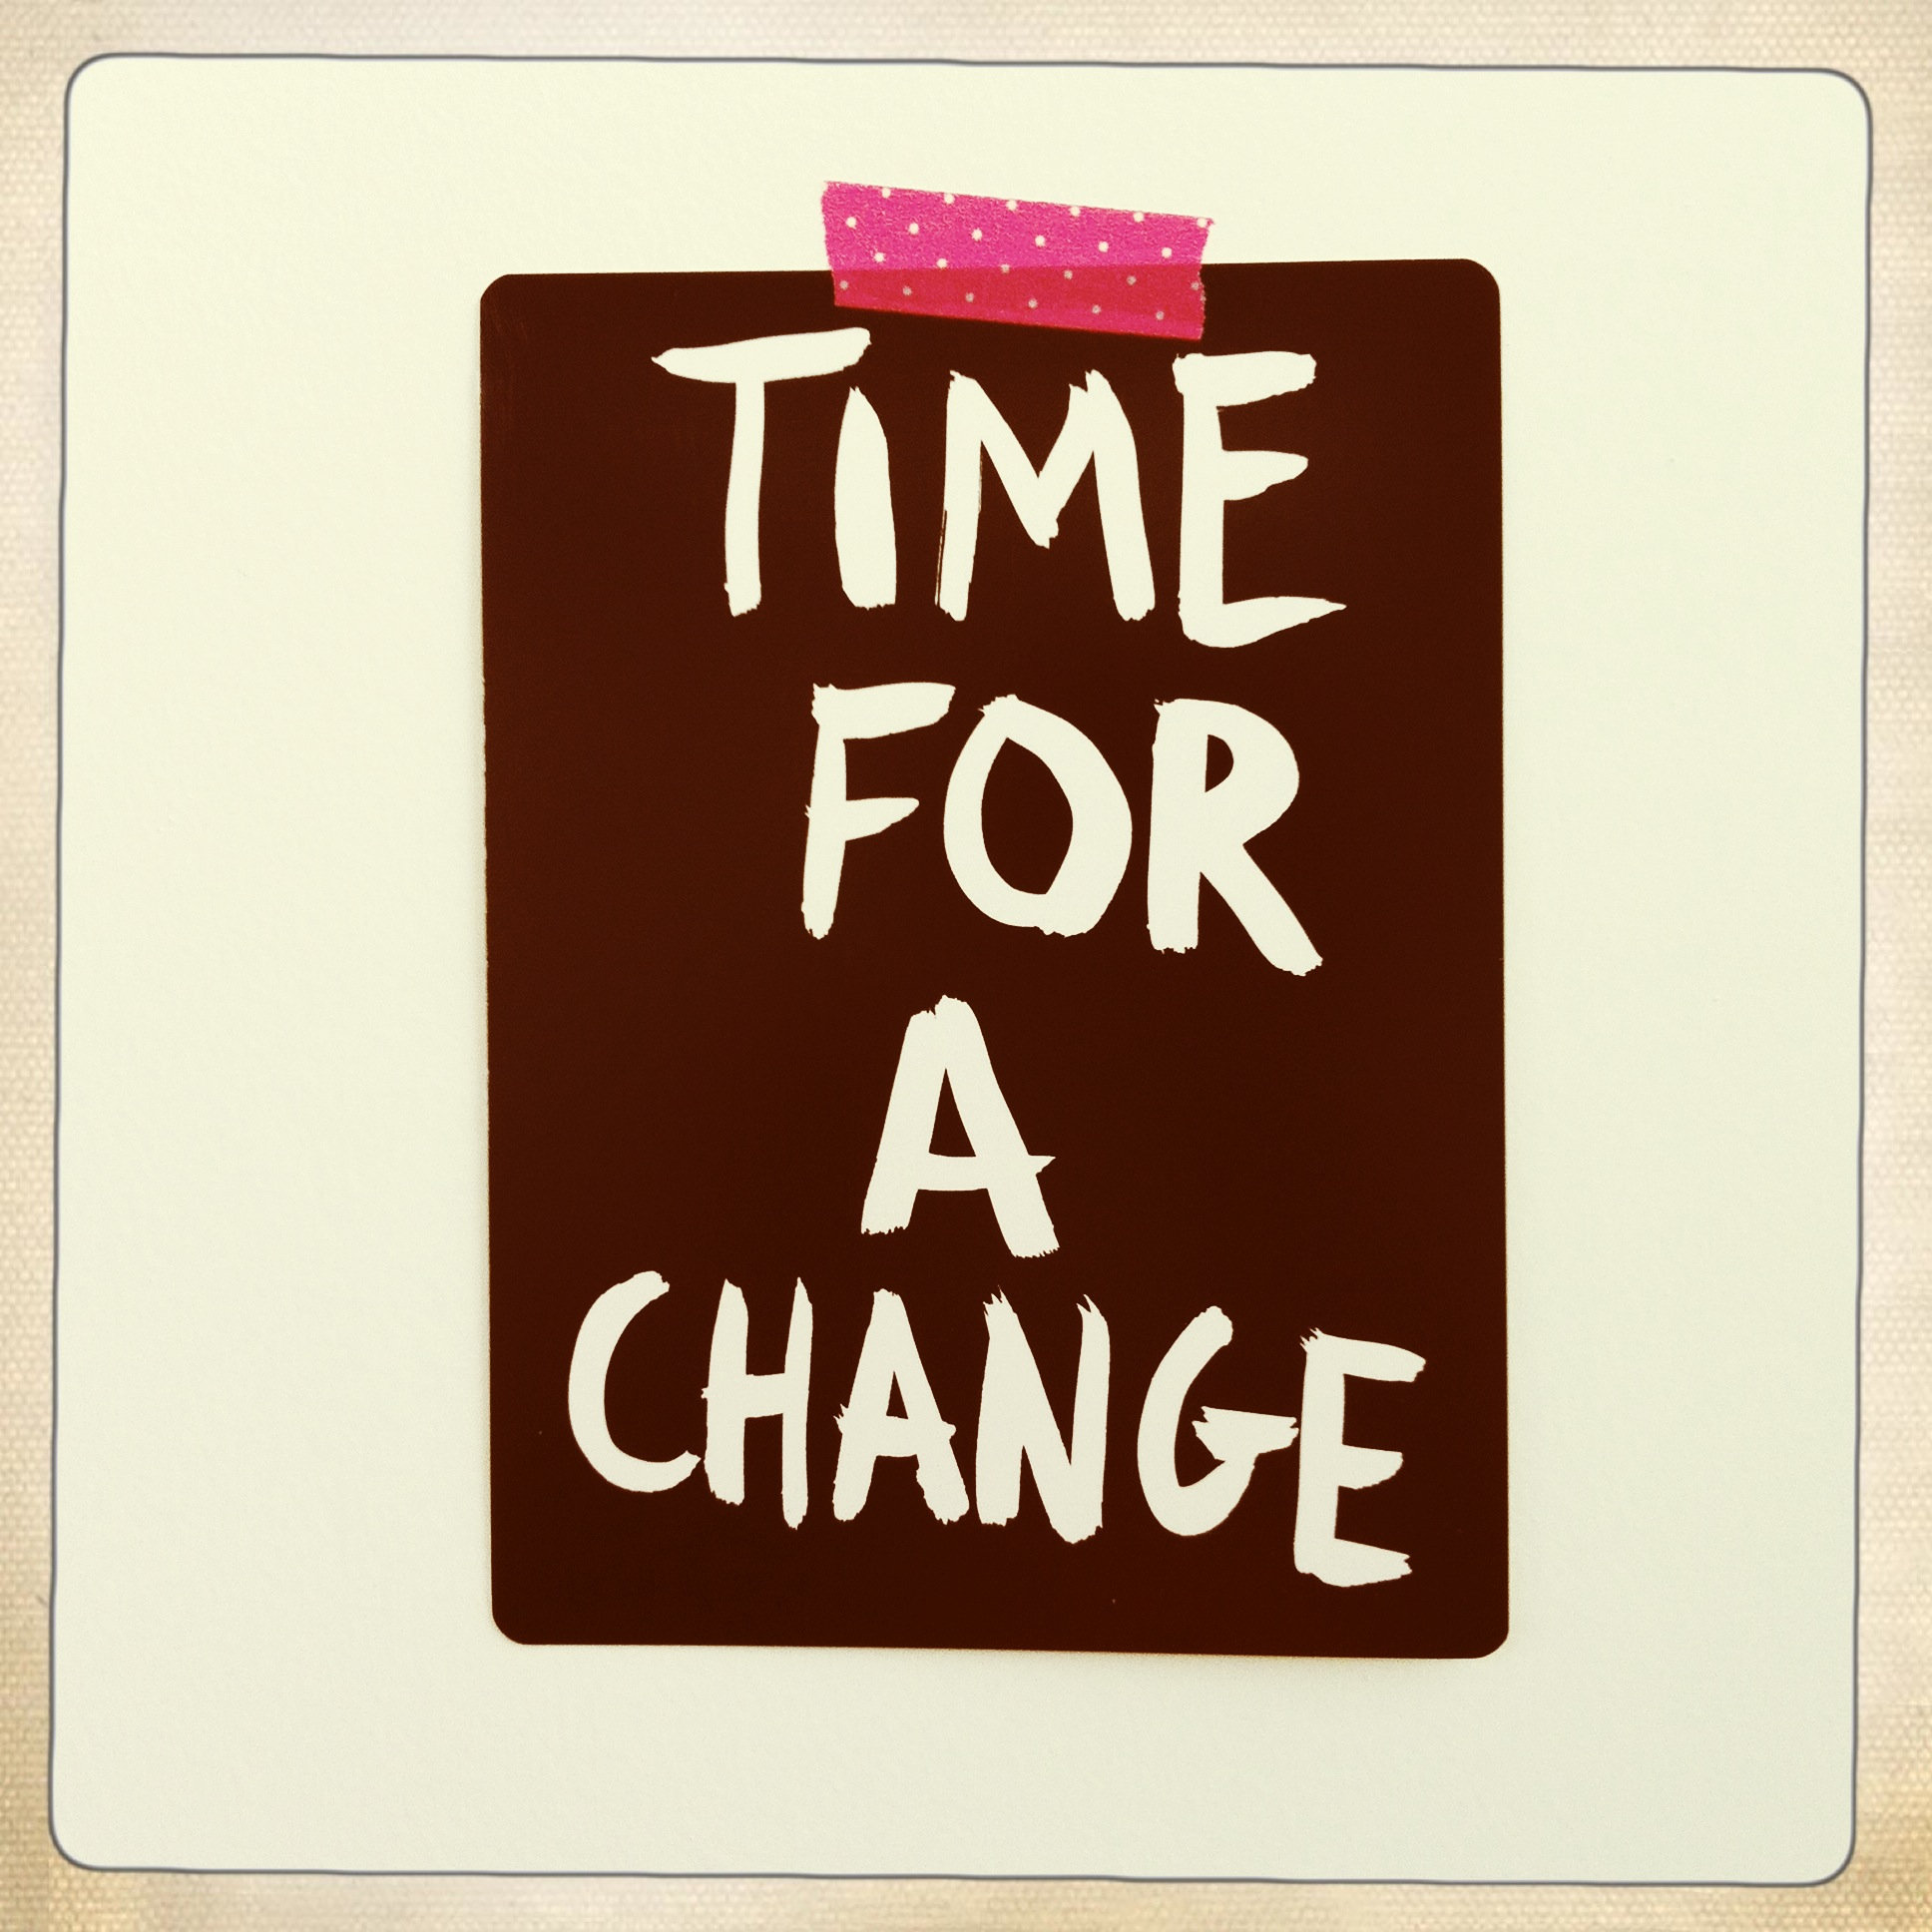 Time For Change Quotes Topsimages